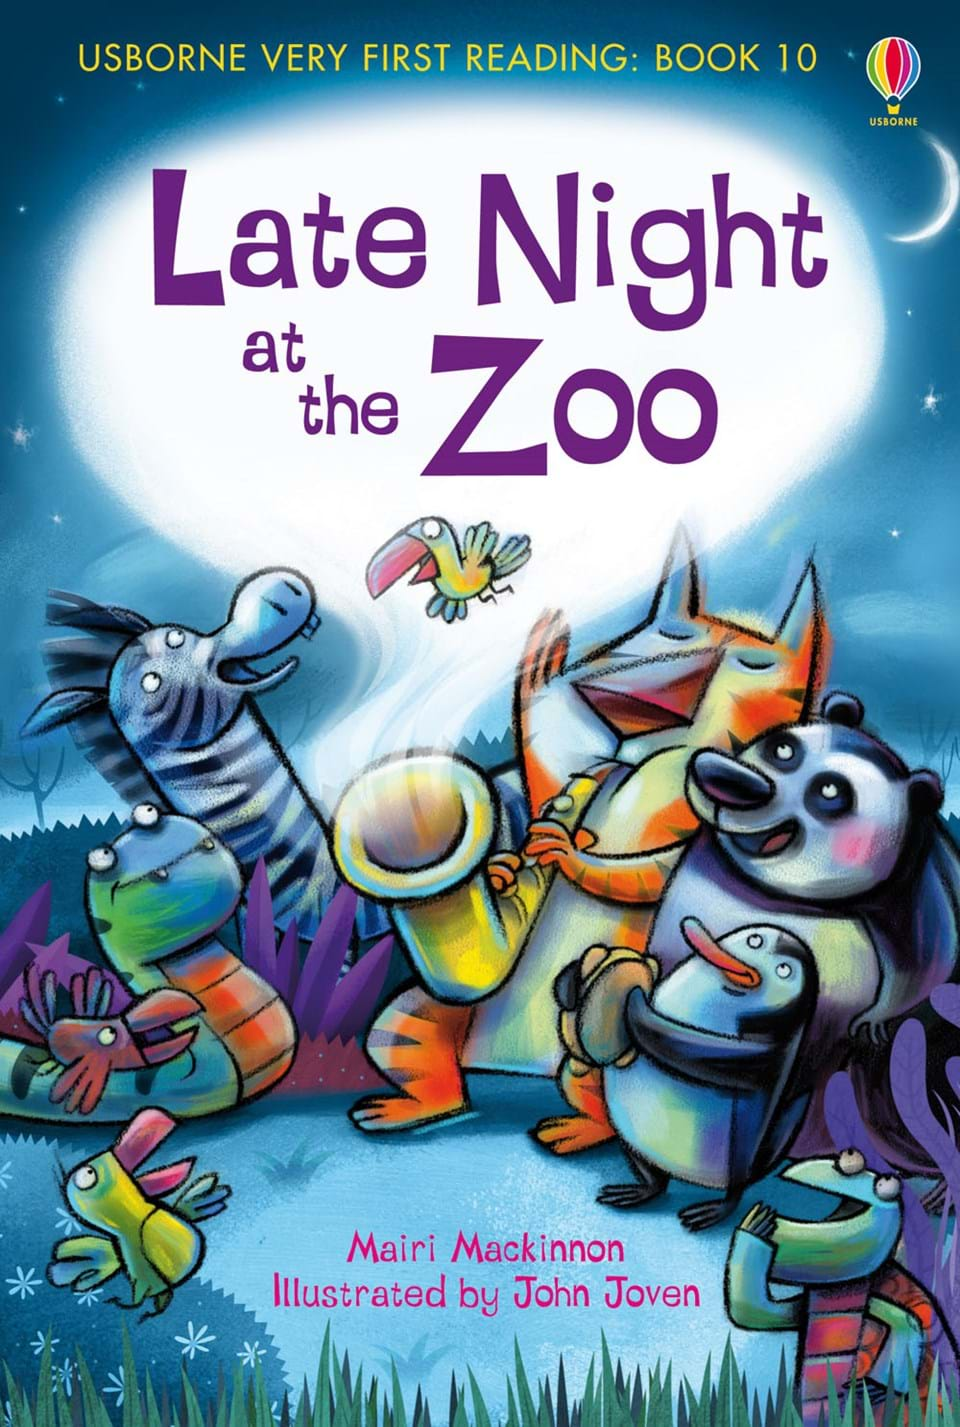 Usborne Very First Reading: Late Night at the Zoo